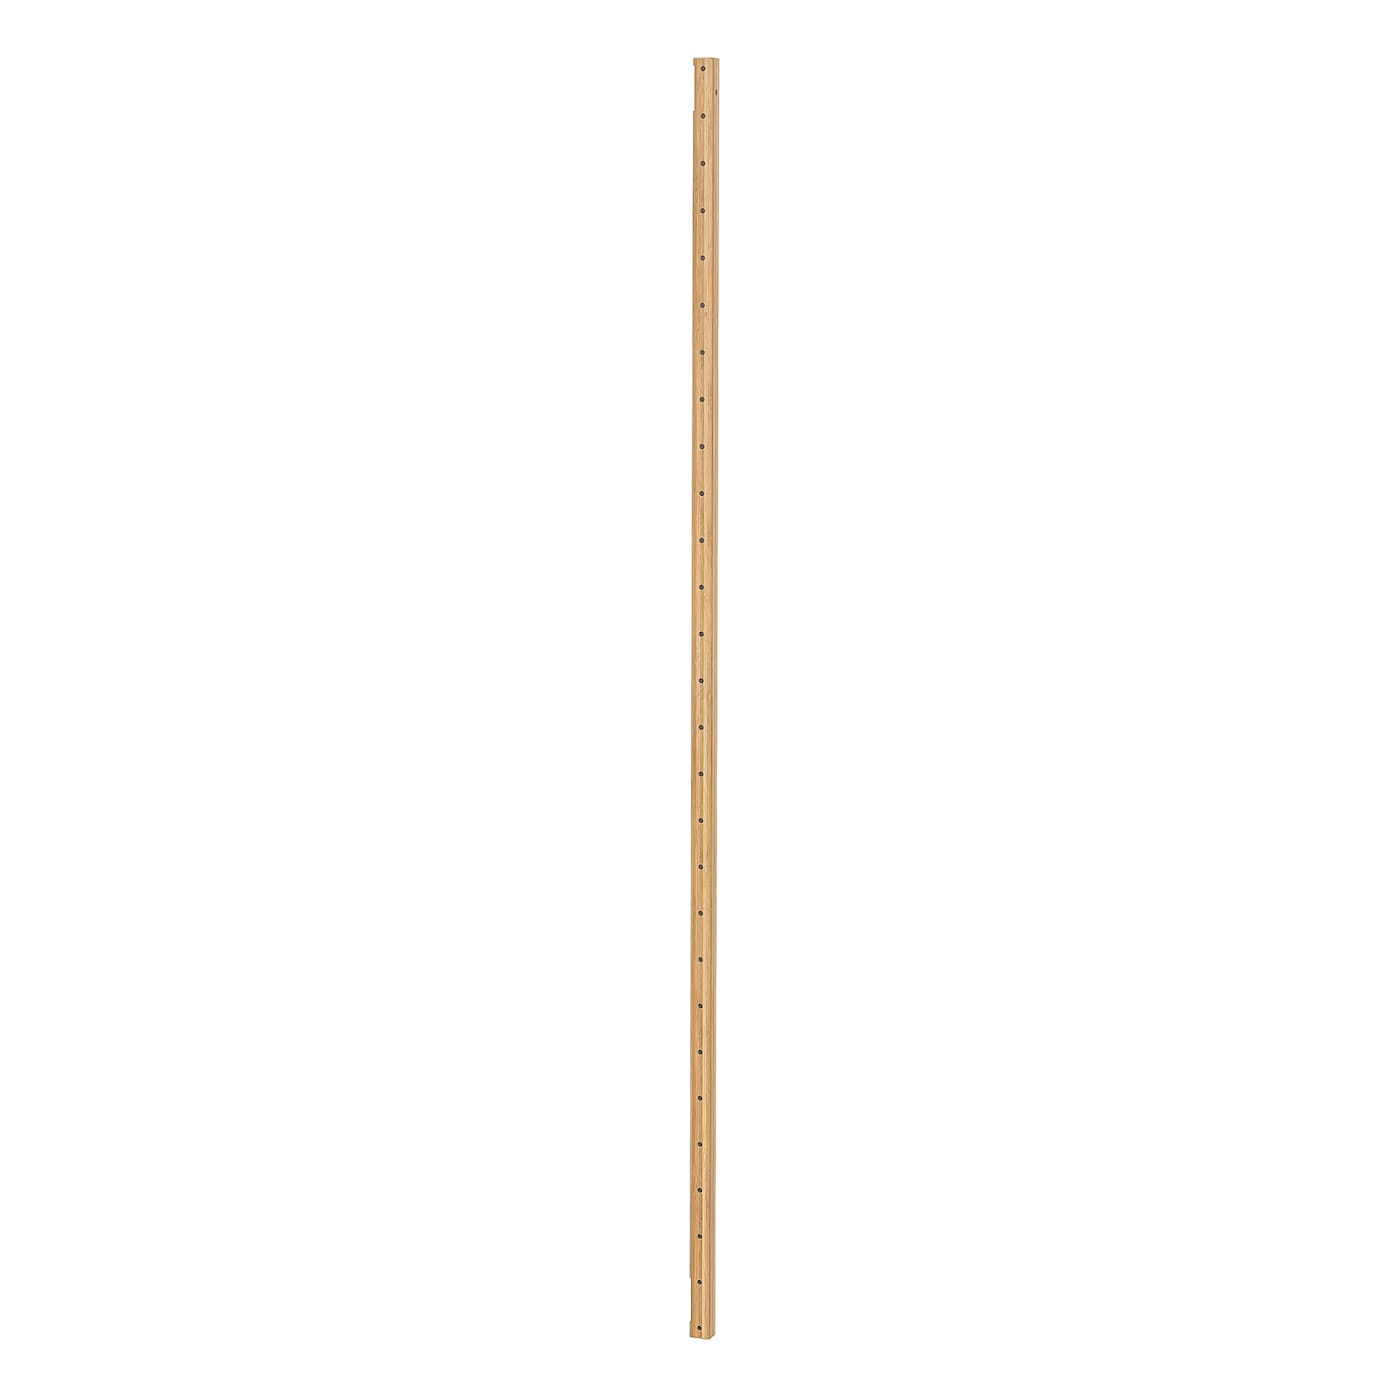 IKEA SVALNÄS wall upright Made of bamboo, which is an easy-care, hard-wearing natural material.